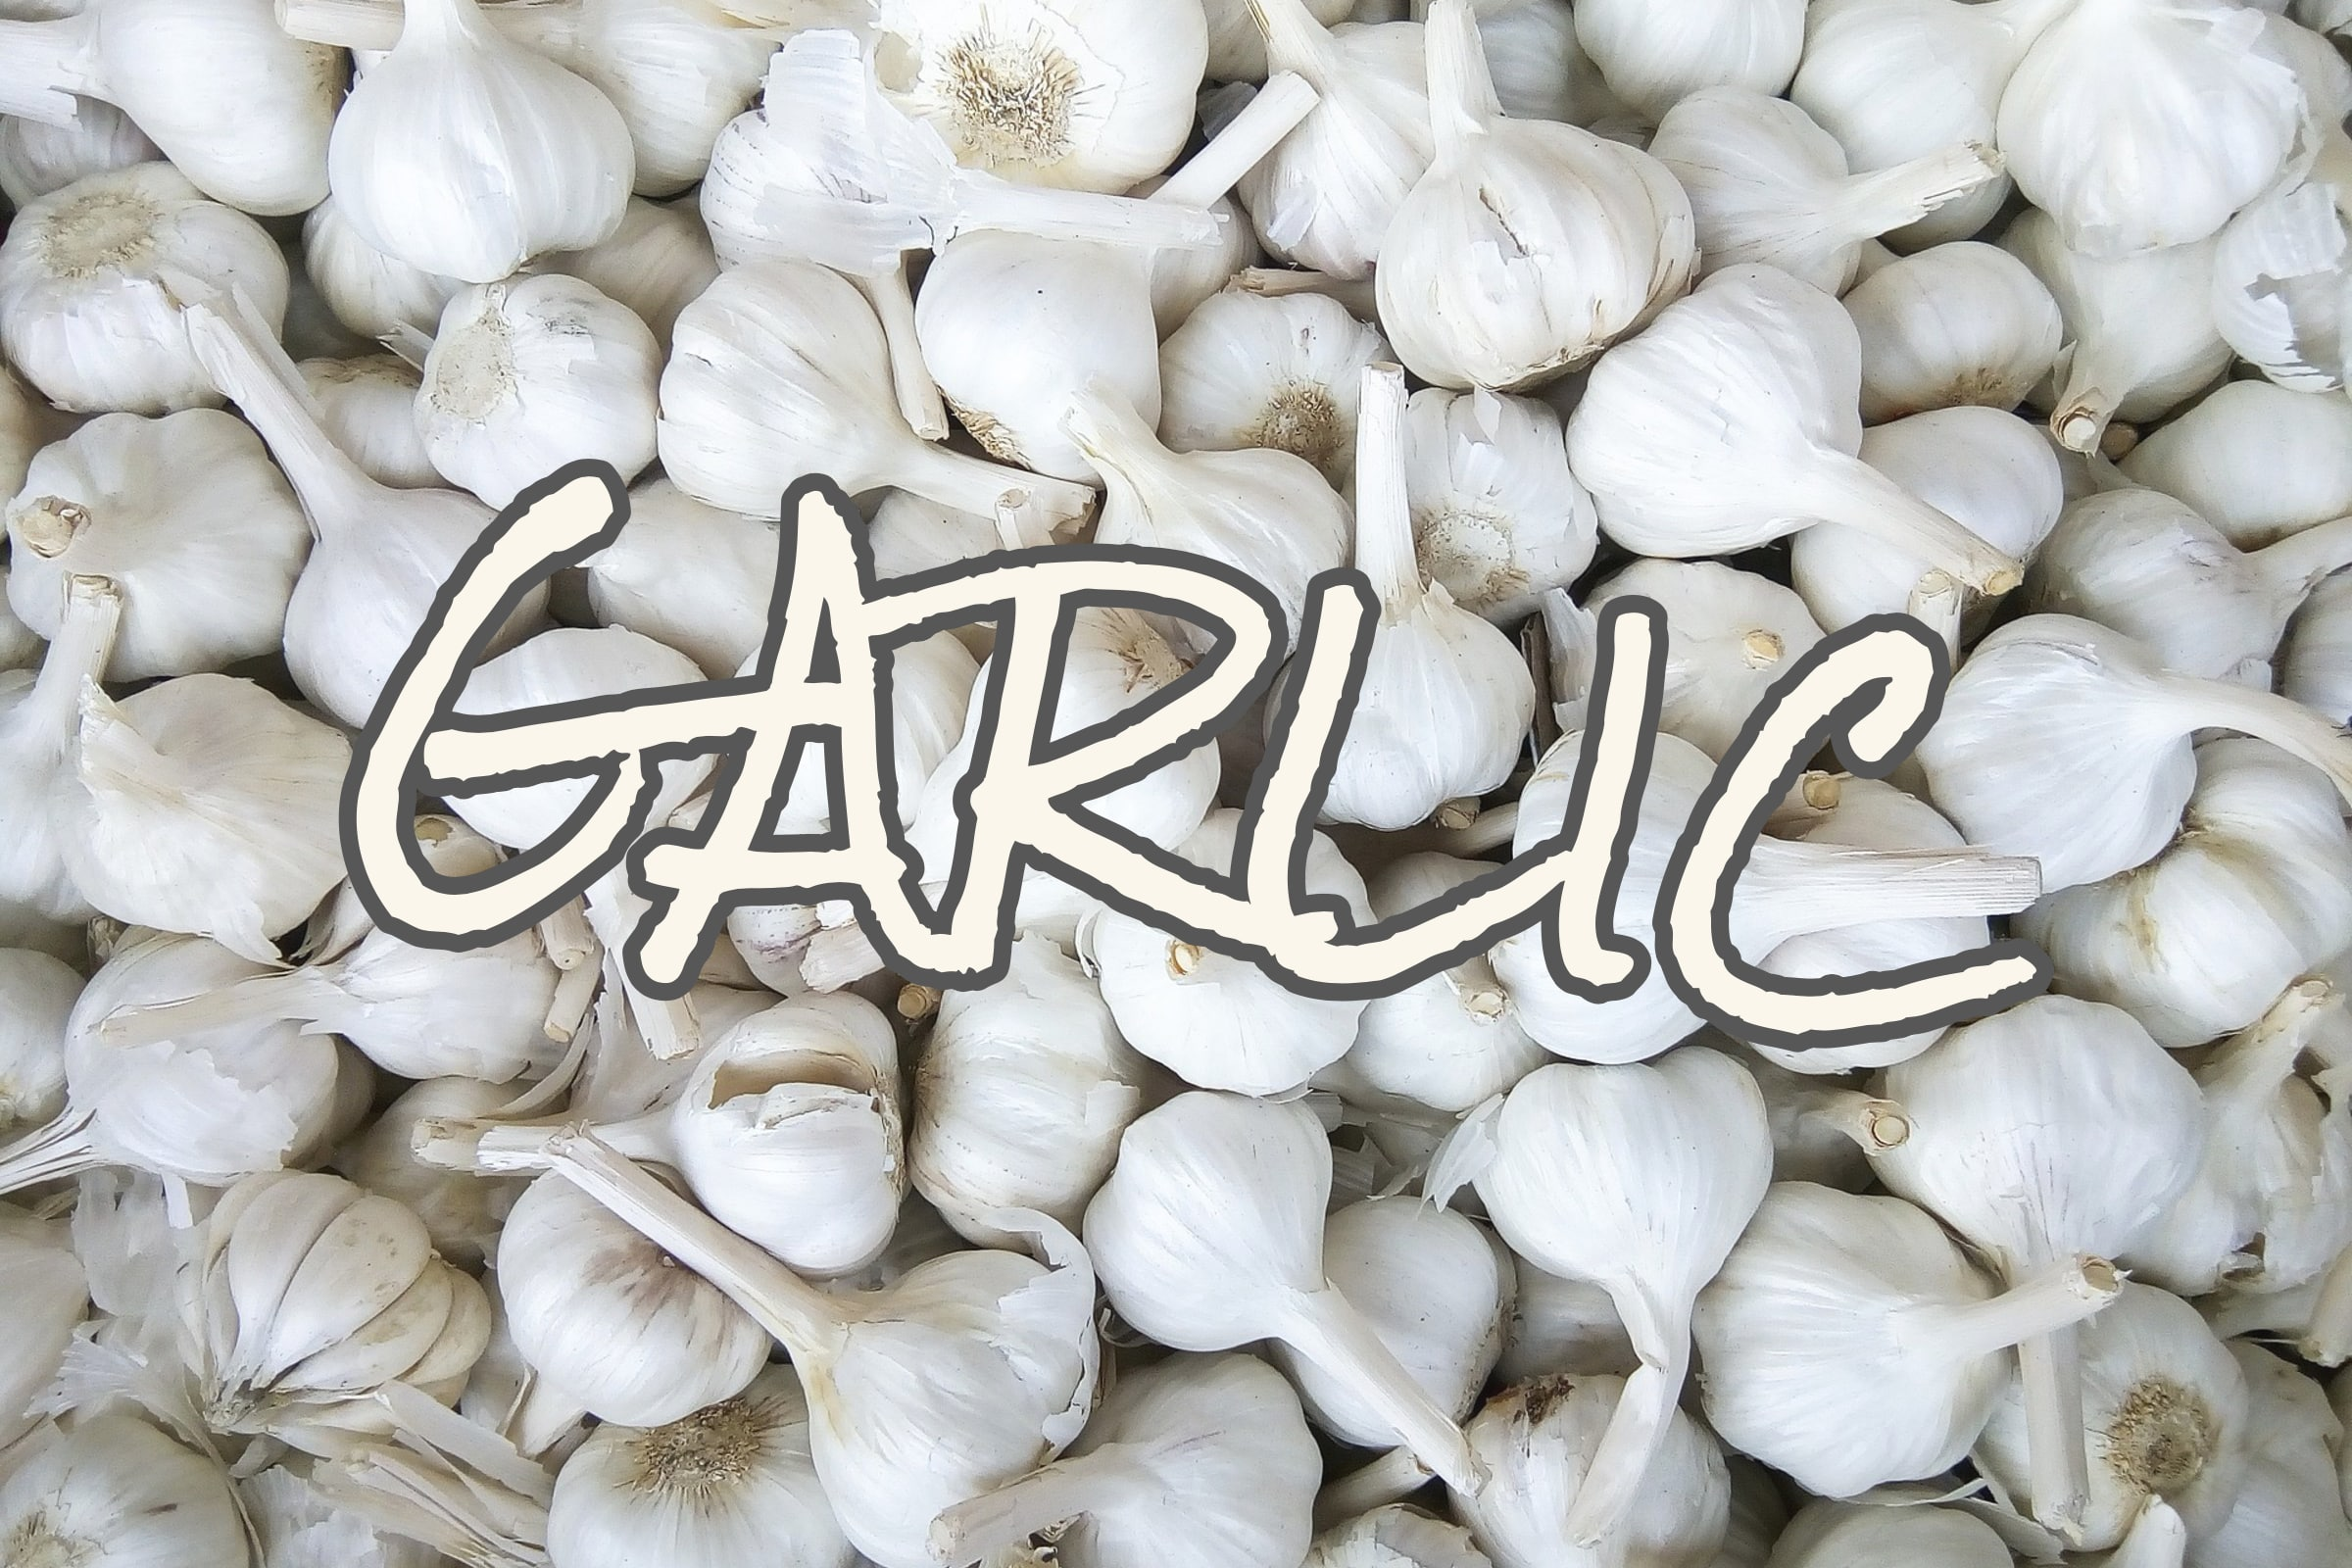 What Is The Garlic Plant?